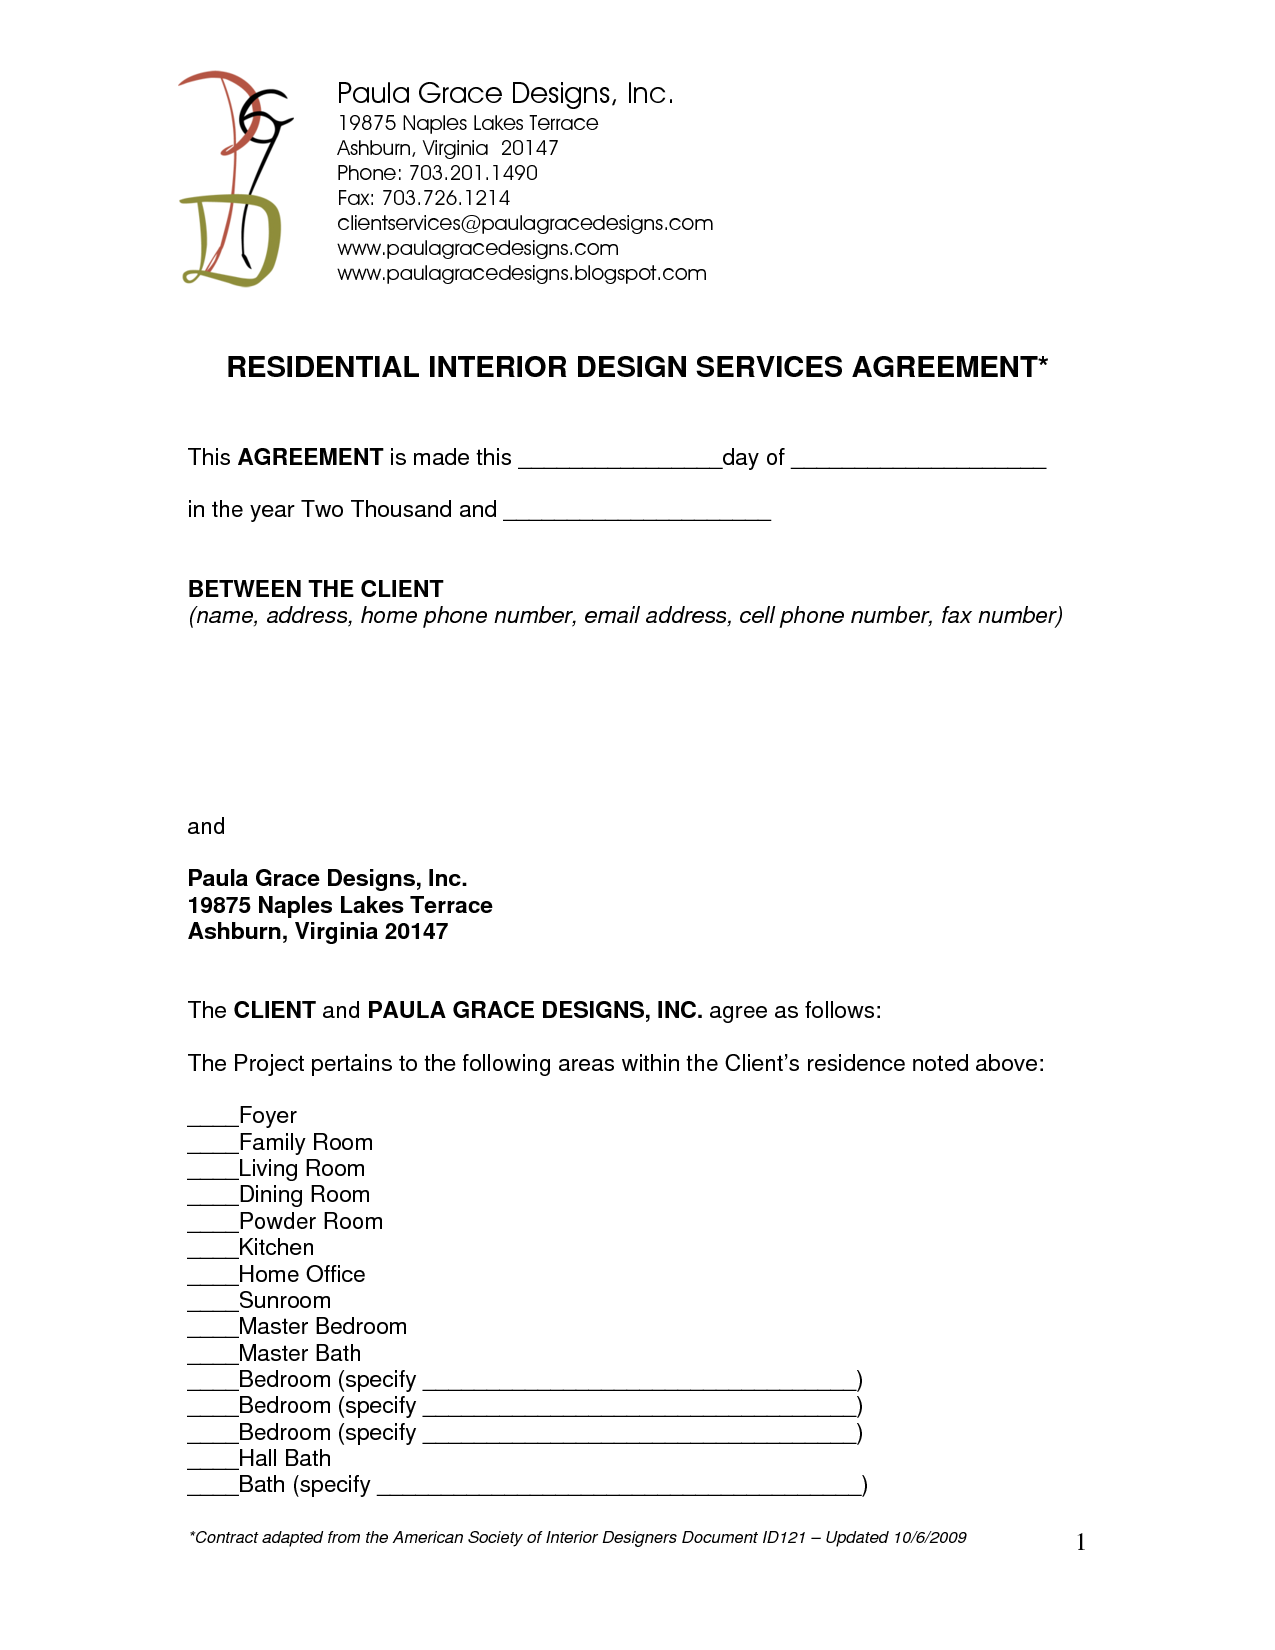 Cover letter for contract agreement - Interior design letter of agreement ...